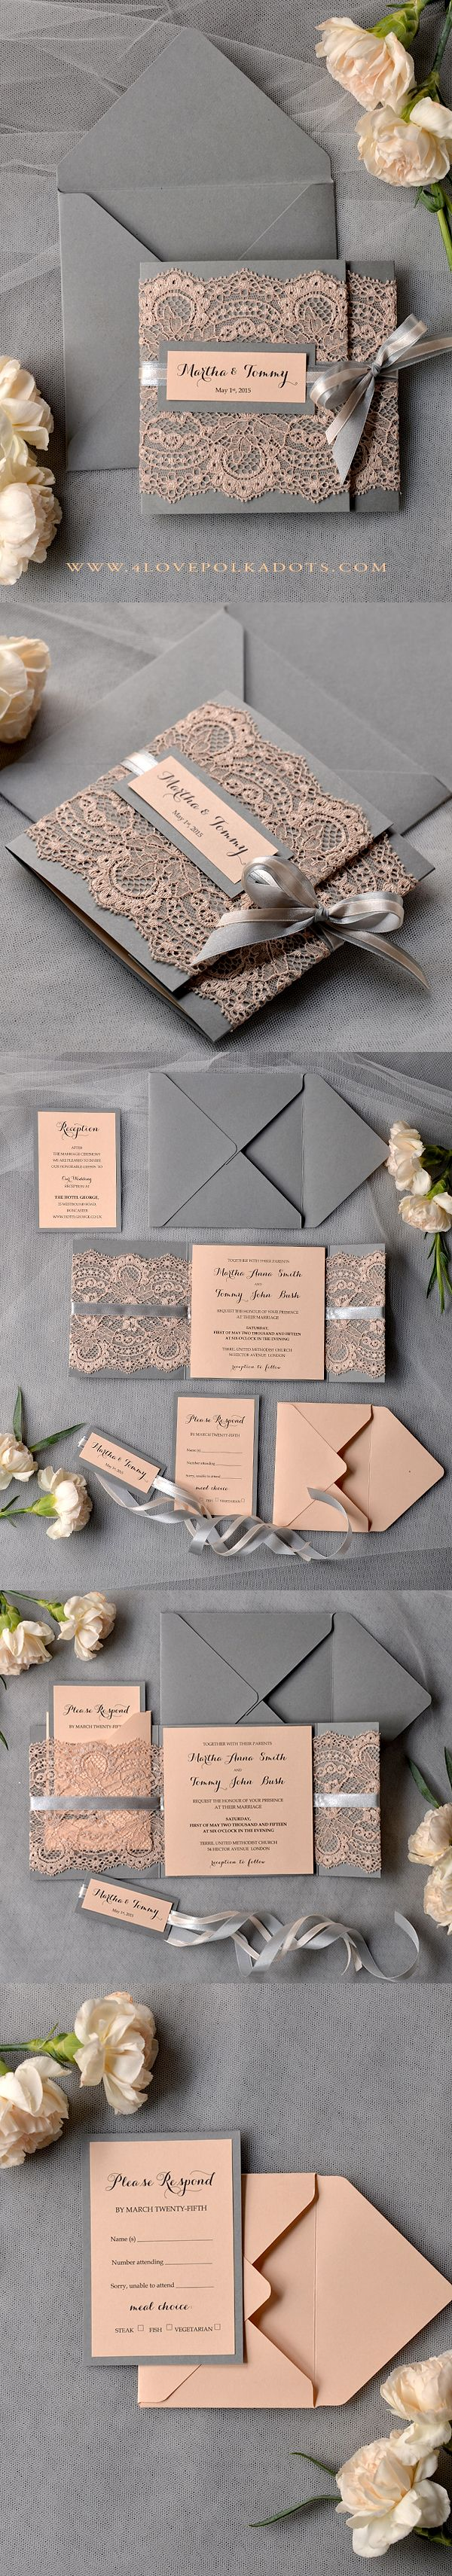 Peach & Grey Lace Wedding Invitations #perfectwedding #weddingideas #lace #romantic #inspiration